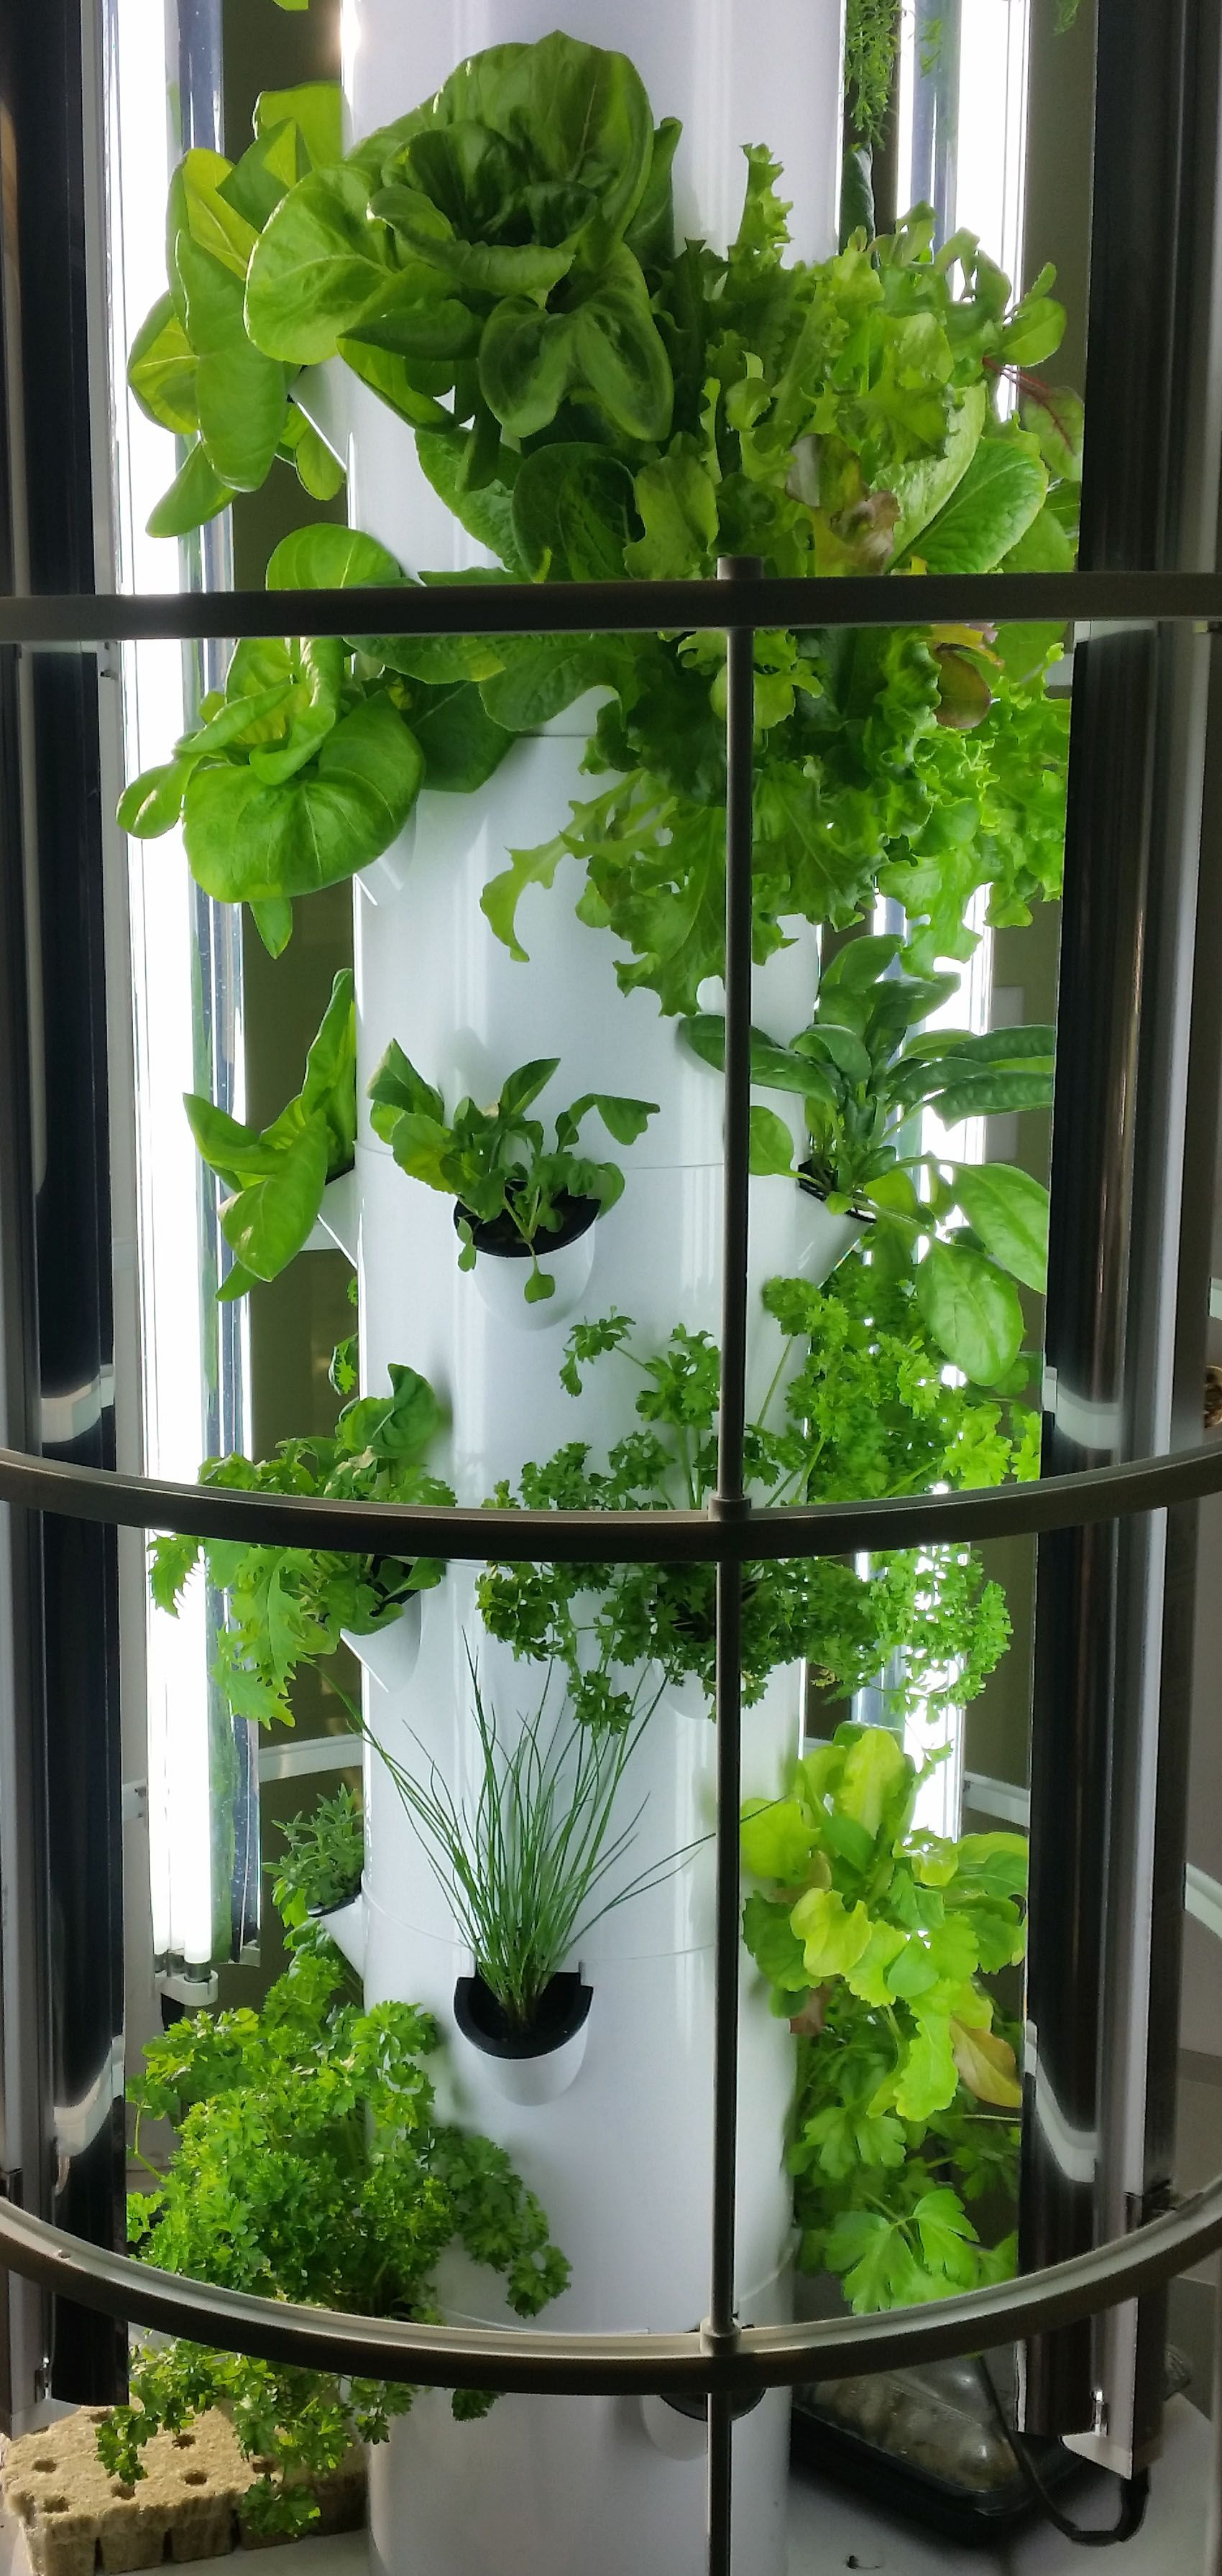 Tower Garden Leafy Greens Grown Indoors In The Michigan